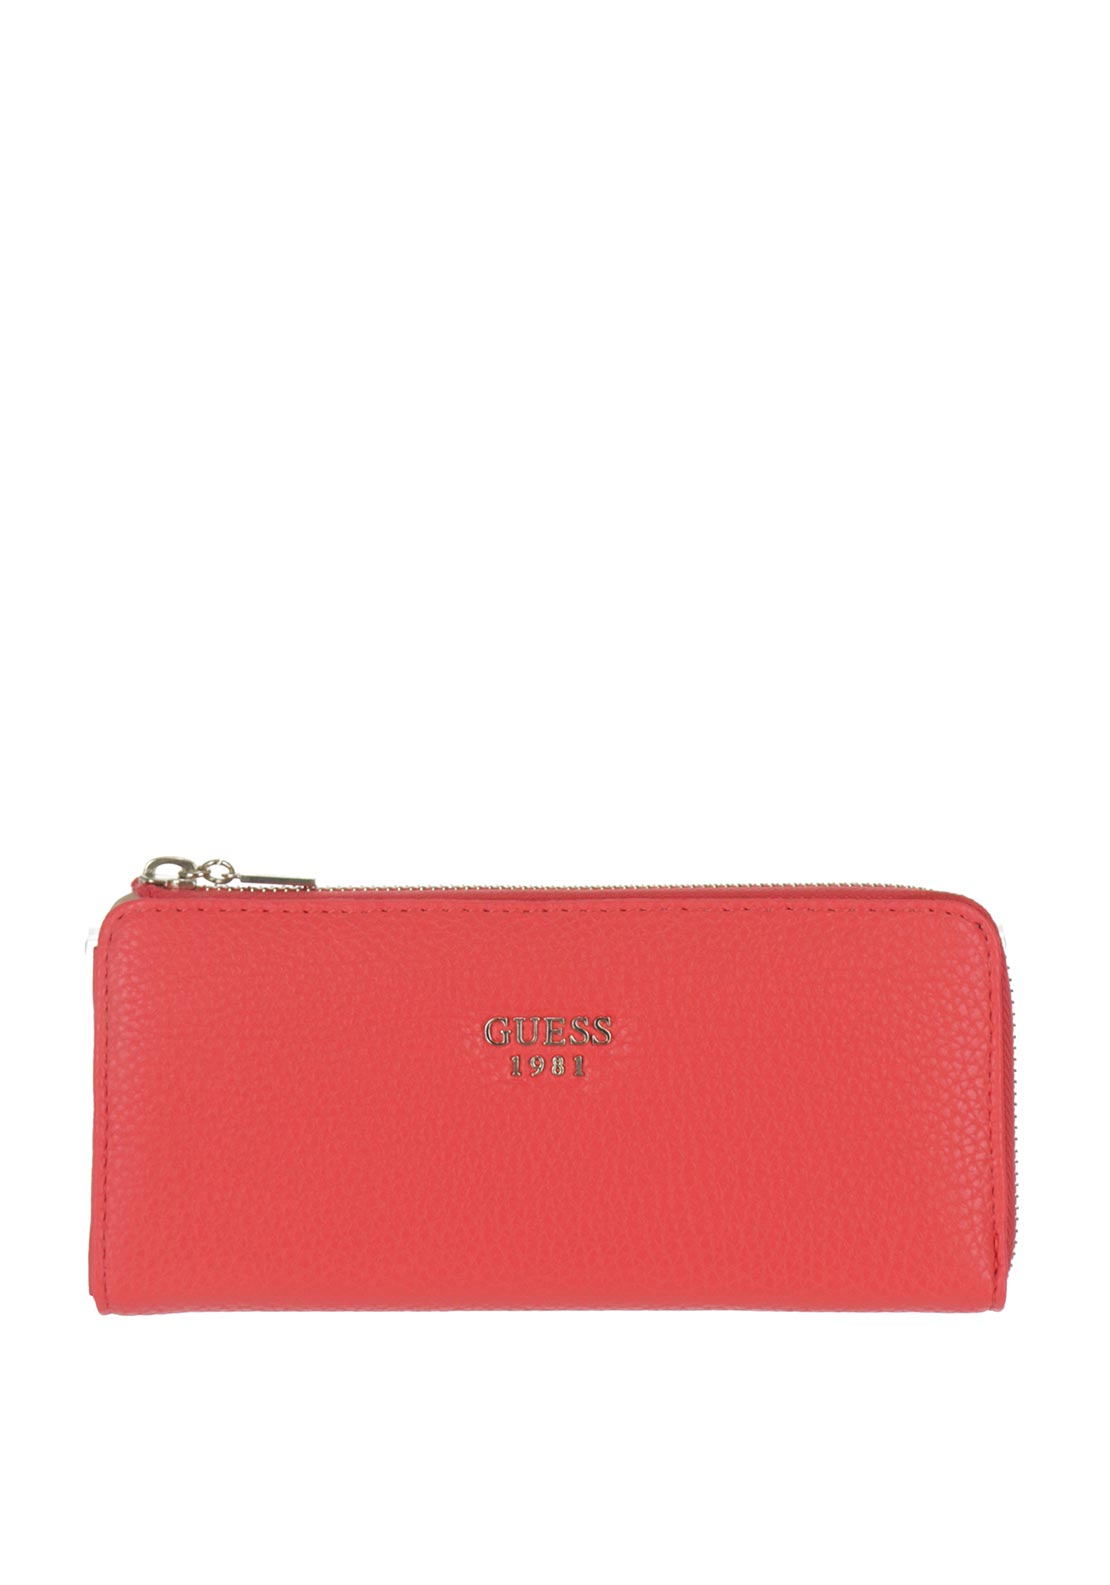 Guess Cate Zip Around Purse, Coral